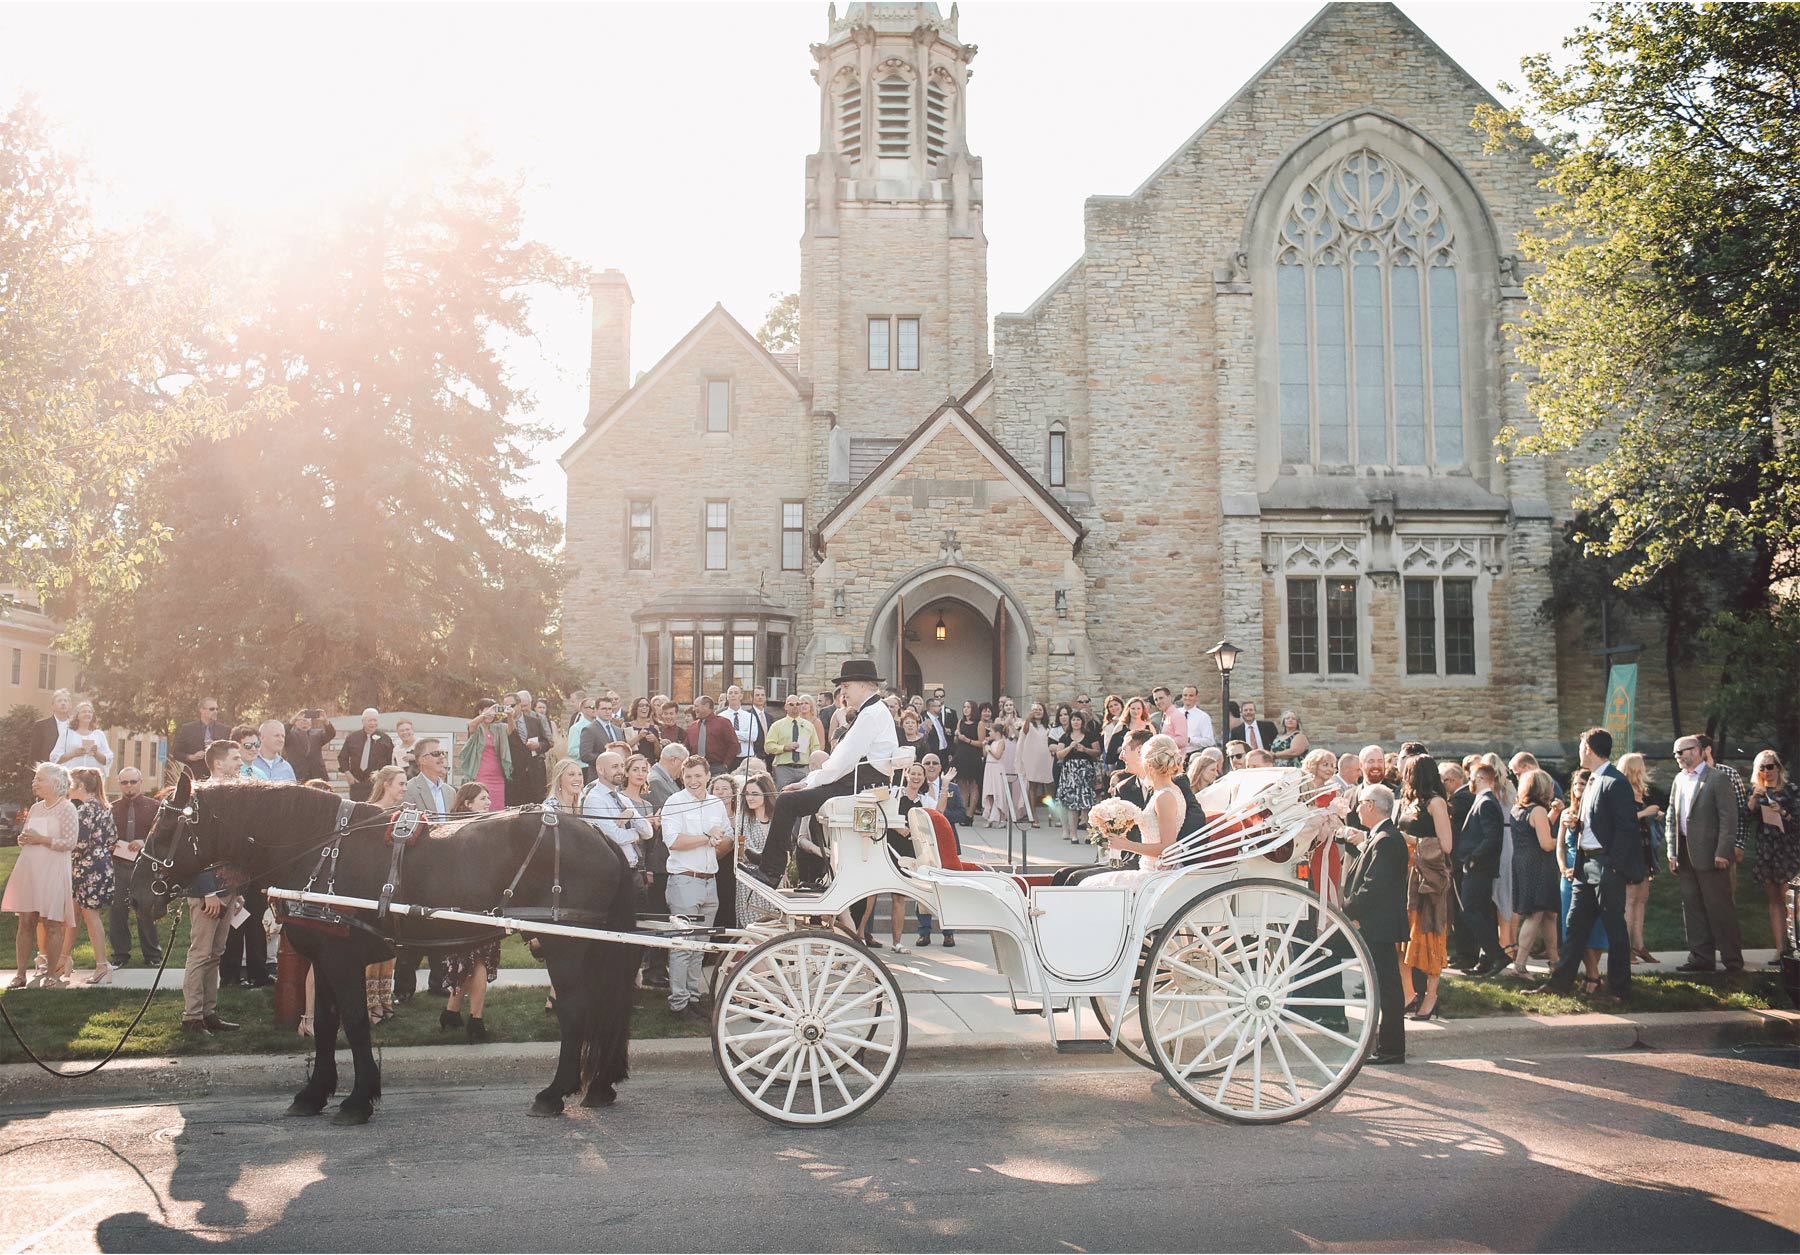 13-Minneapolis-Minnesota-Wedding-Photography-by-Vick-Photography-Ceremony-Lake-of-the-Isles-Lutheran-Church-Bubble-Horse-Carraige-Send-Off-Jenna-and-Josh.jpg